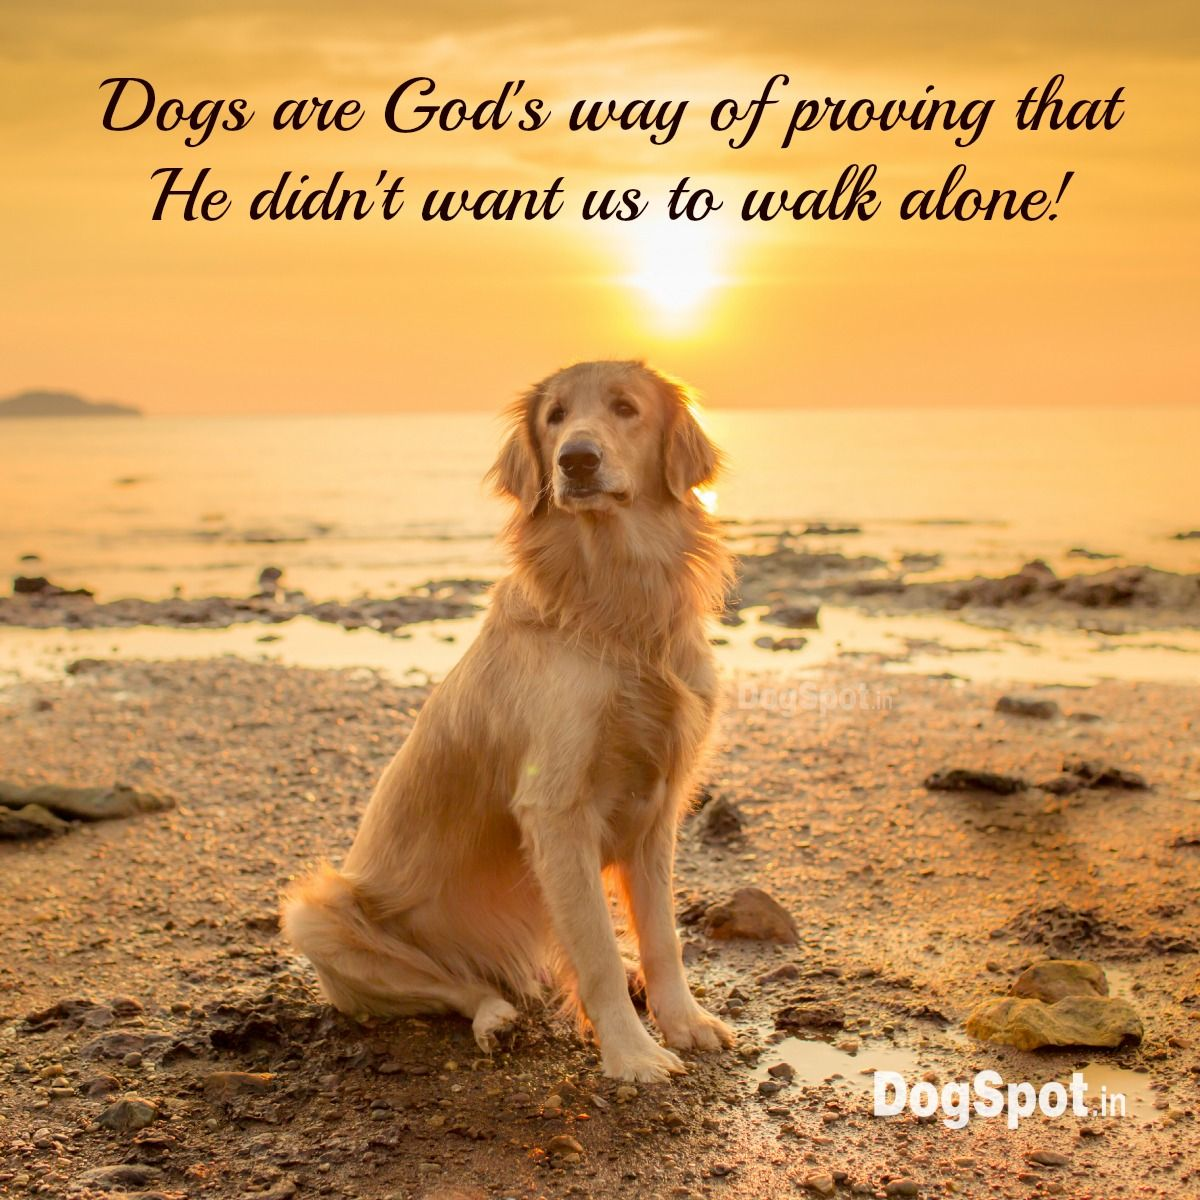 Quotes About Dogs Golden Retriever  Noble Loyal Companions  Pinterest  Dog Animal